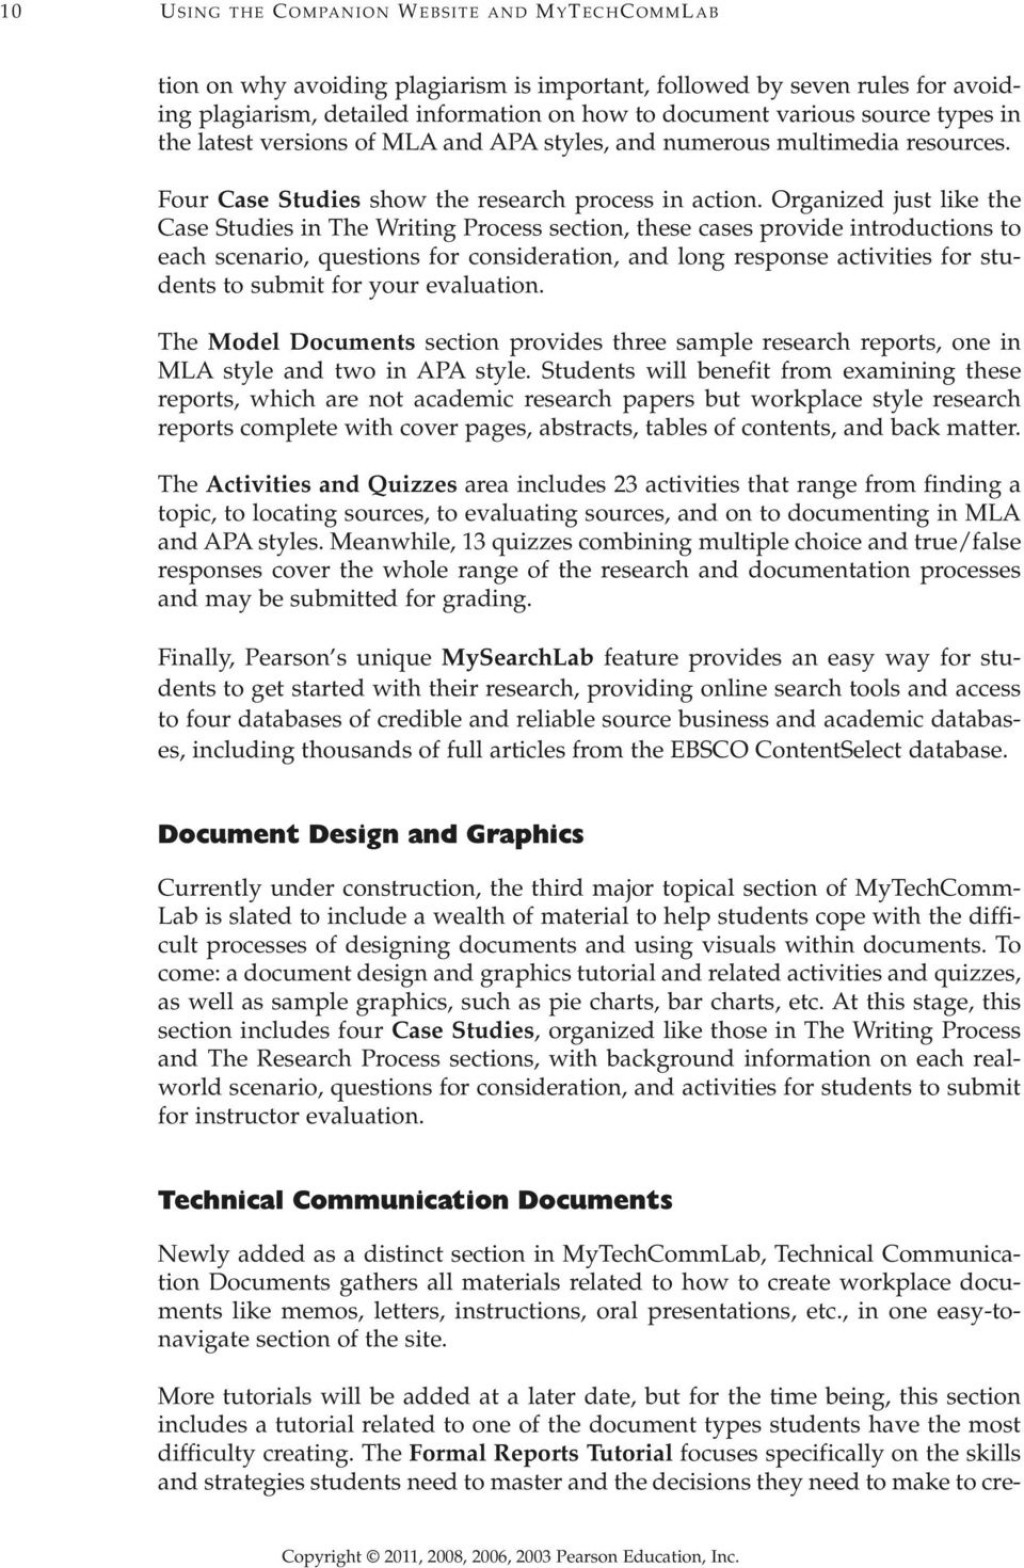 013 Research Paper Page 18 Interesting Topics Fearsome Biology Cell For Evolutionary High School Large